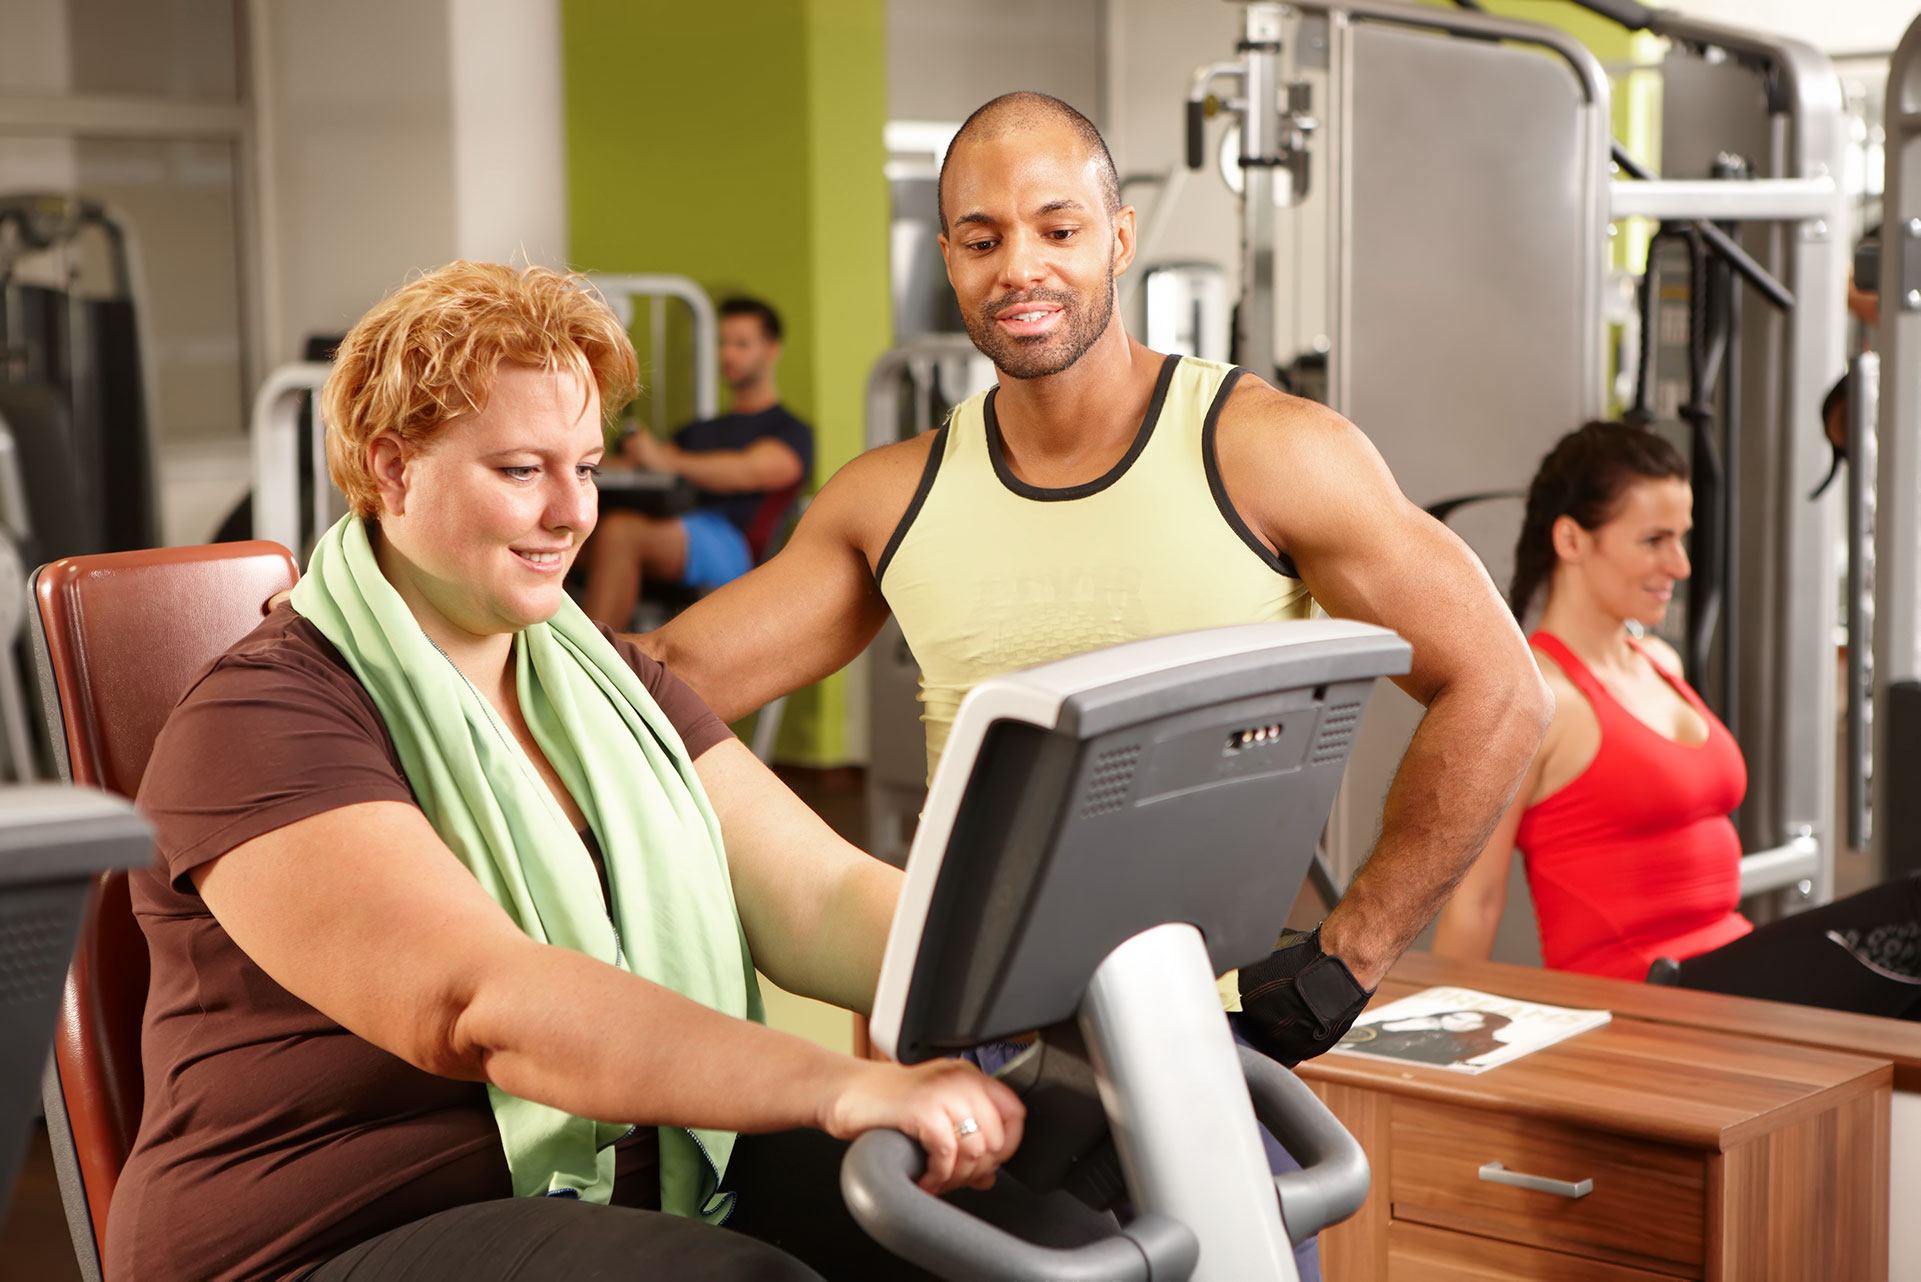 Male personal trainer working with a female client on a stationary bike